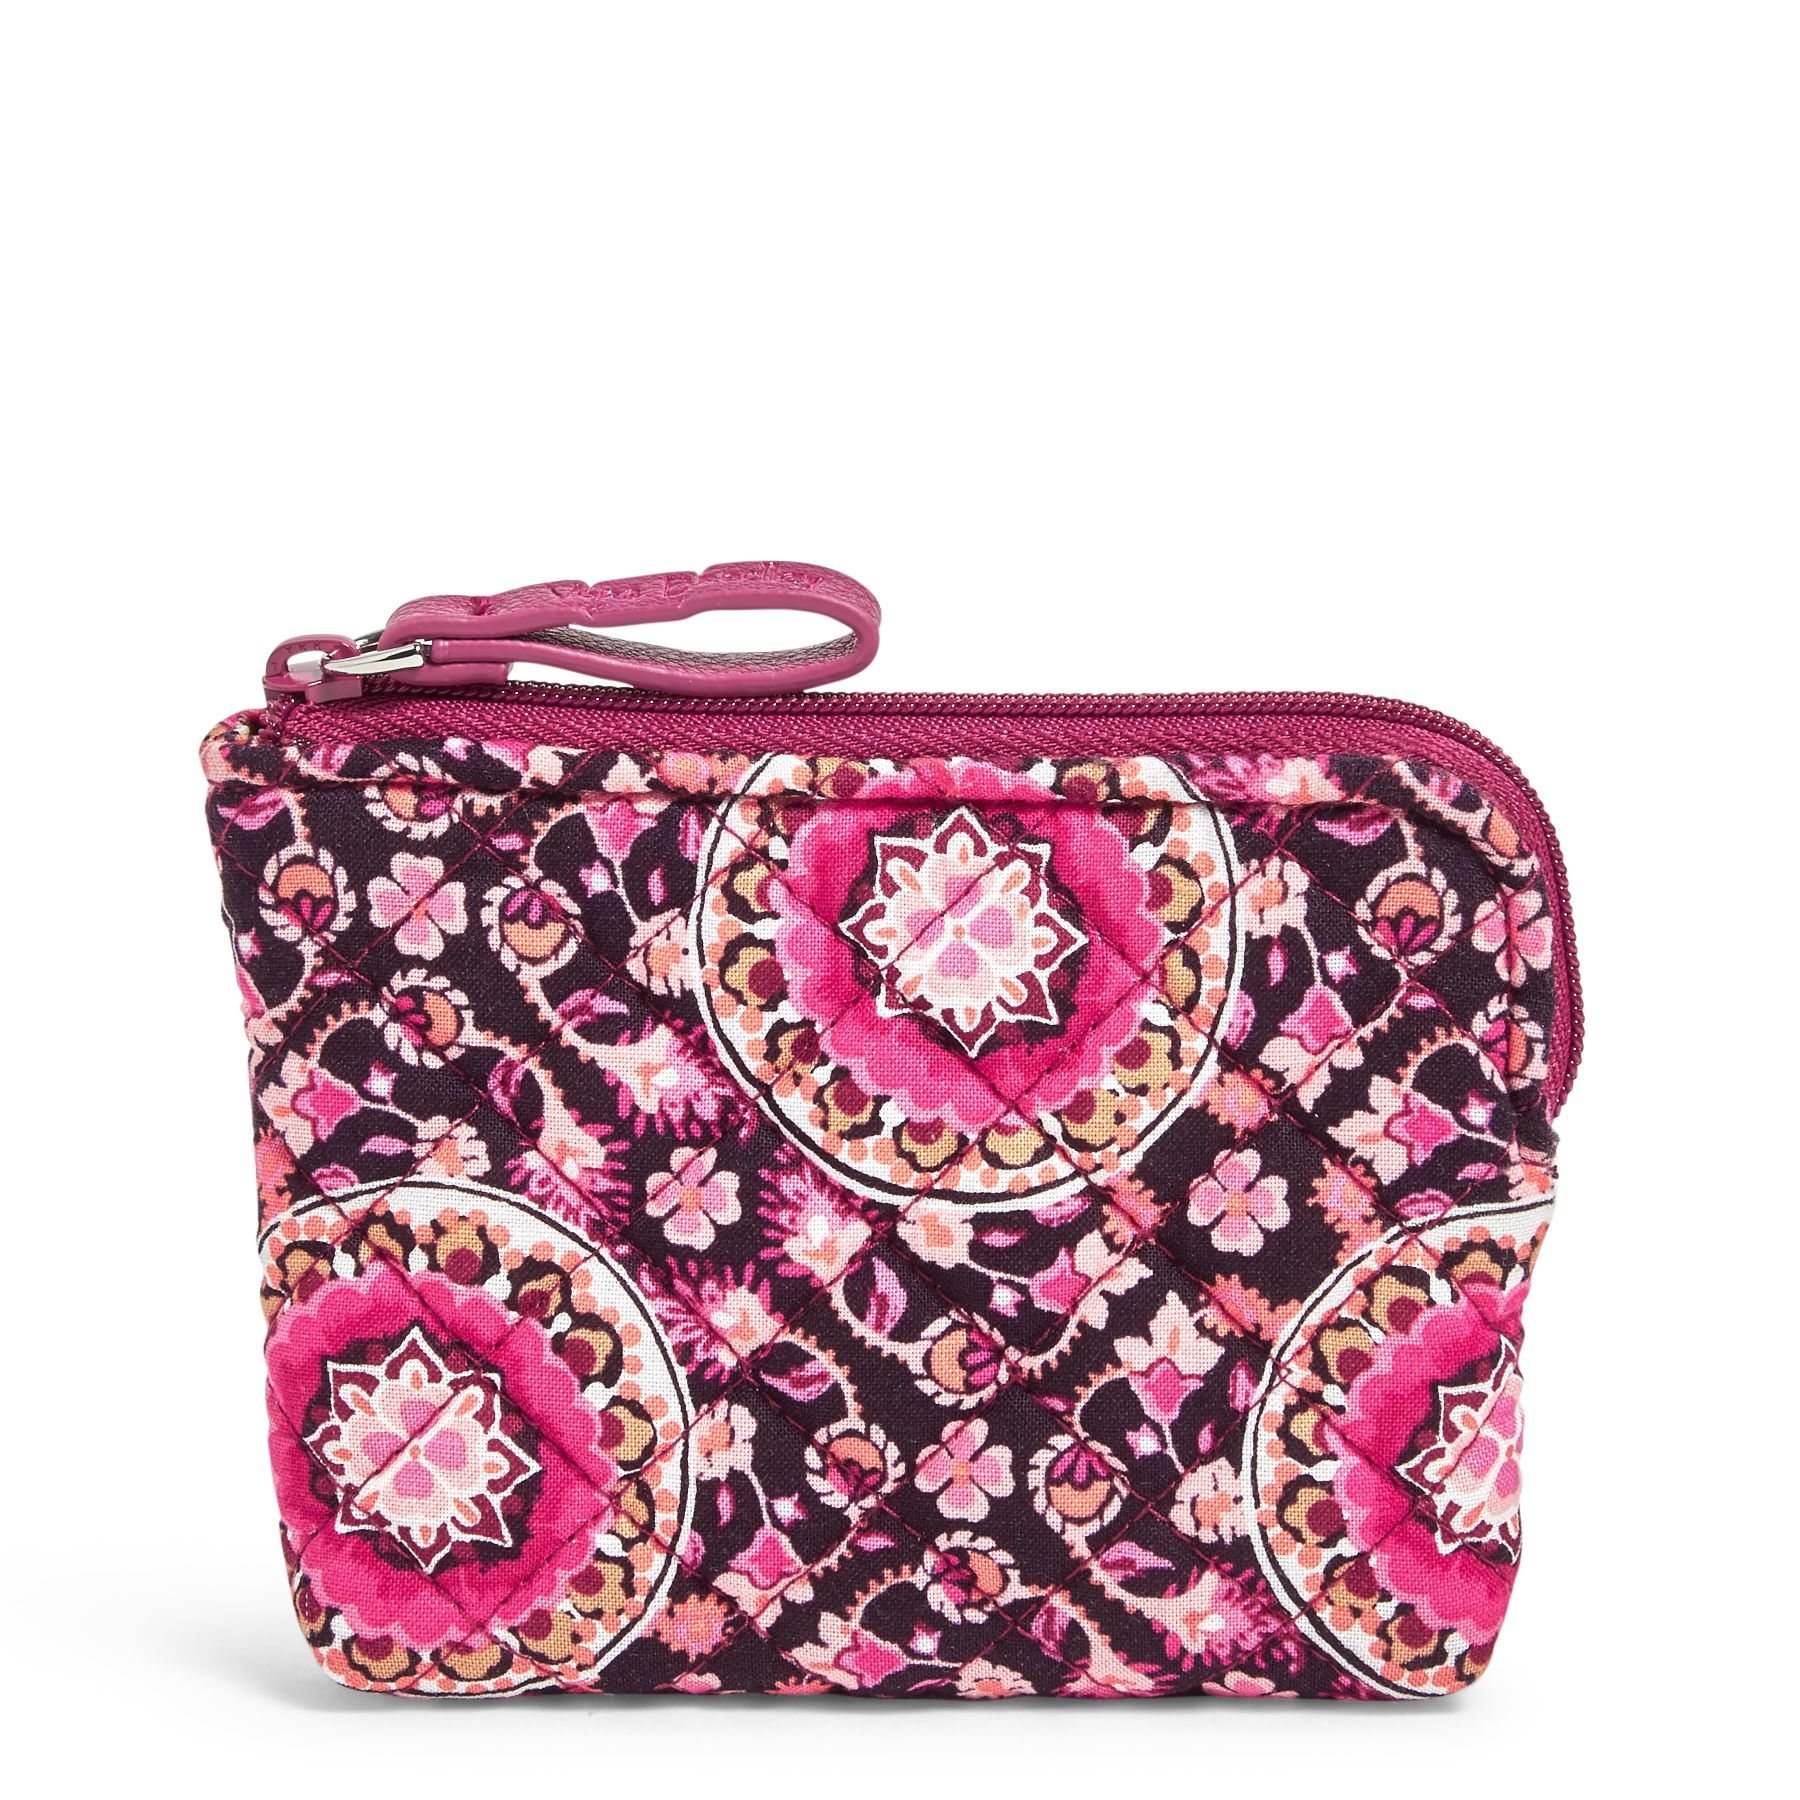 Vera Bradley Coin Purse, Pink, Raspberry Medallion (886003619940 Accessories) photo